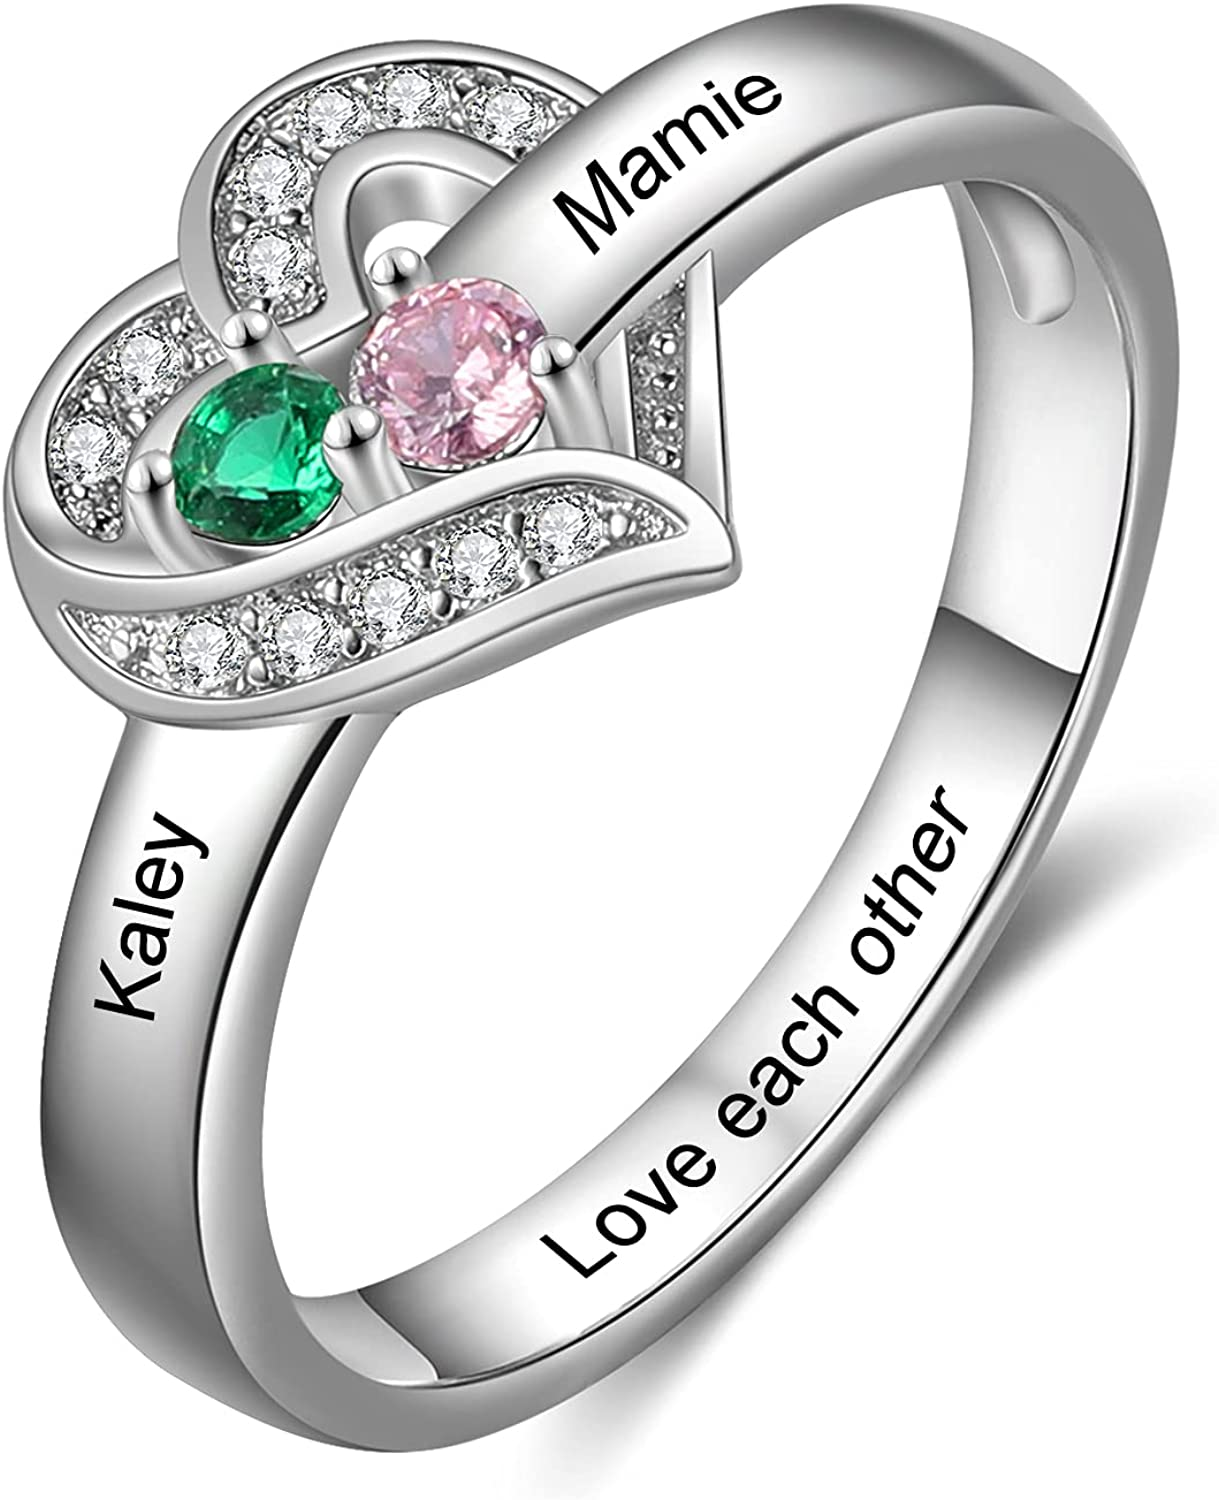 Personalized Max 84% OFF Heart Promise Rings for Her Name Engagement Max 51% OFF Couples